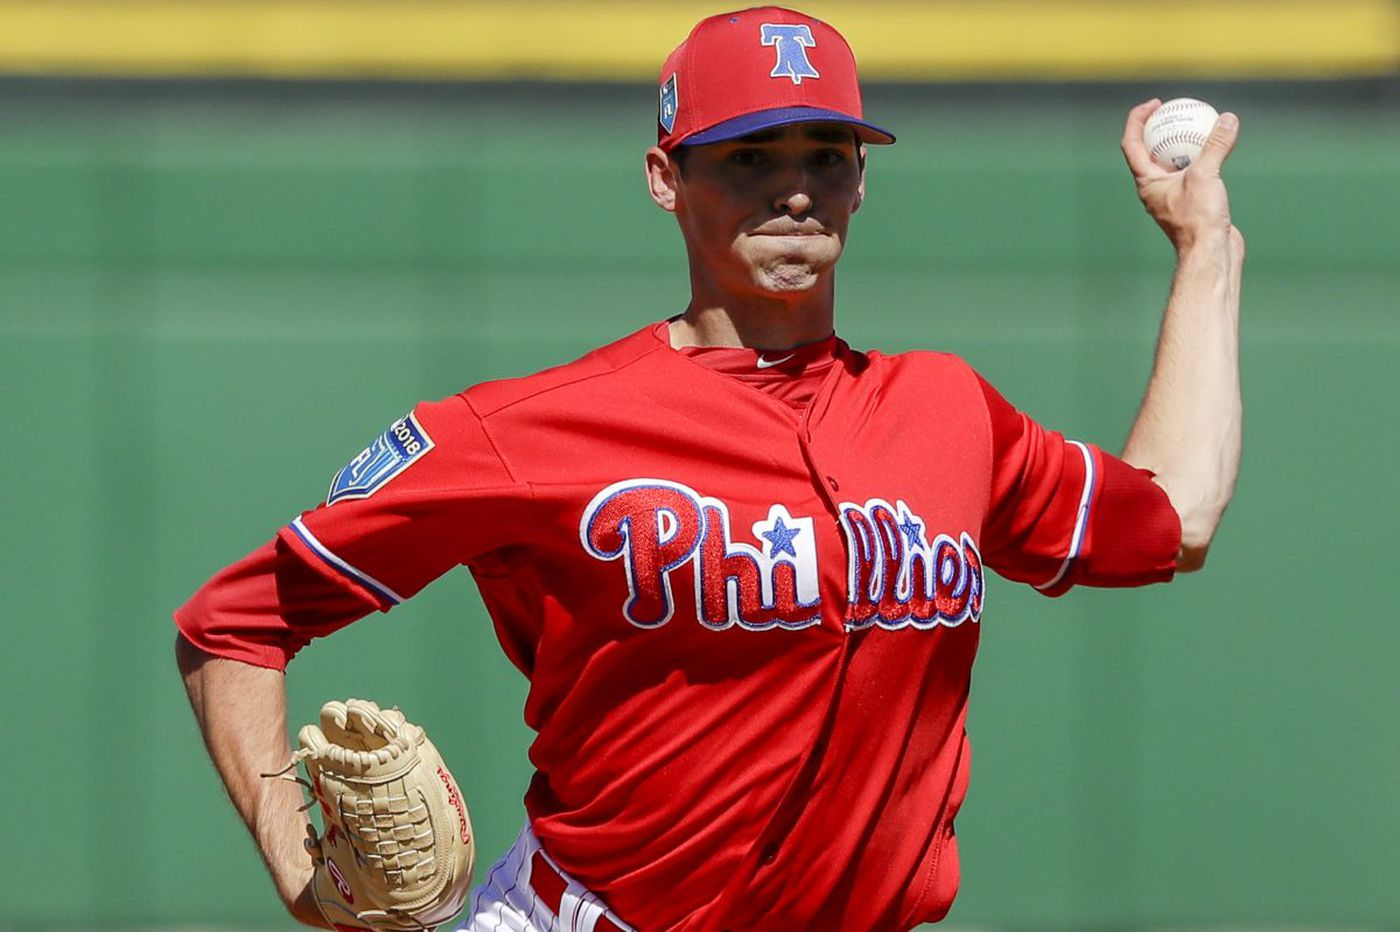 Gabe Kapler's actions as Phillies manager an early cause for concern